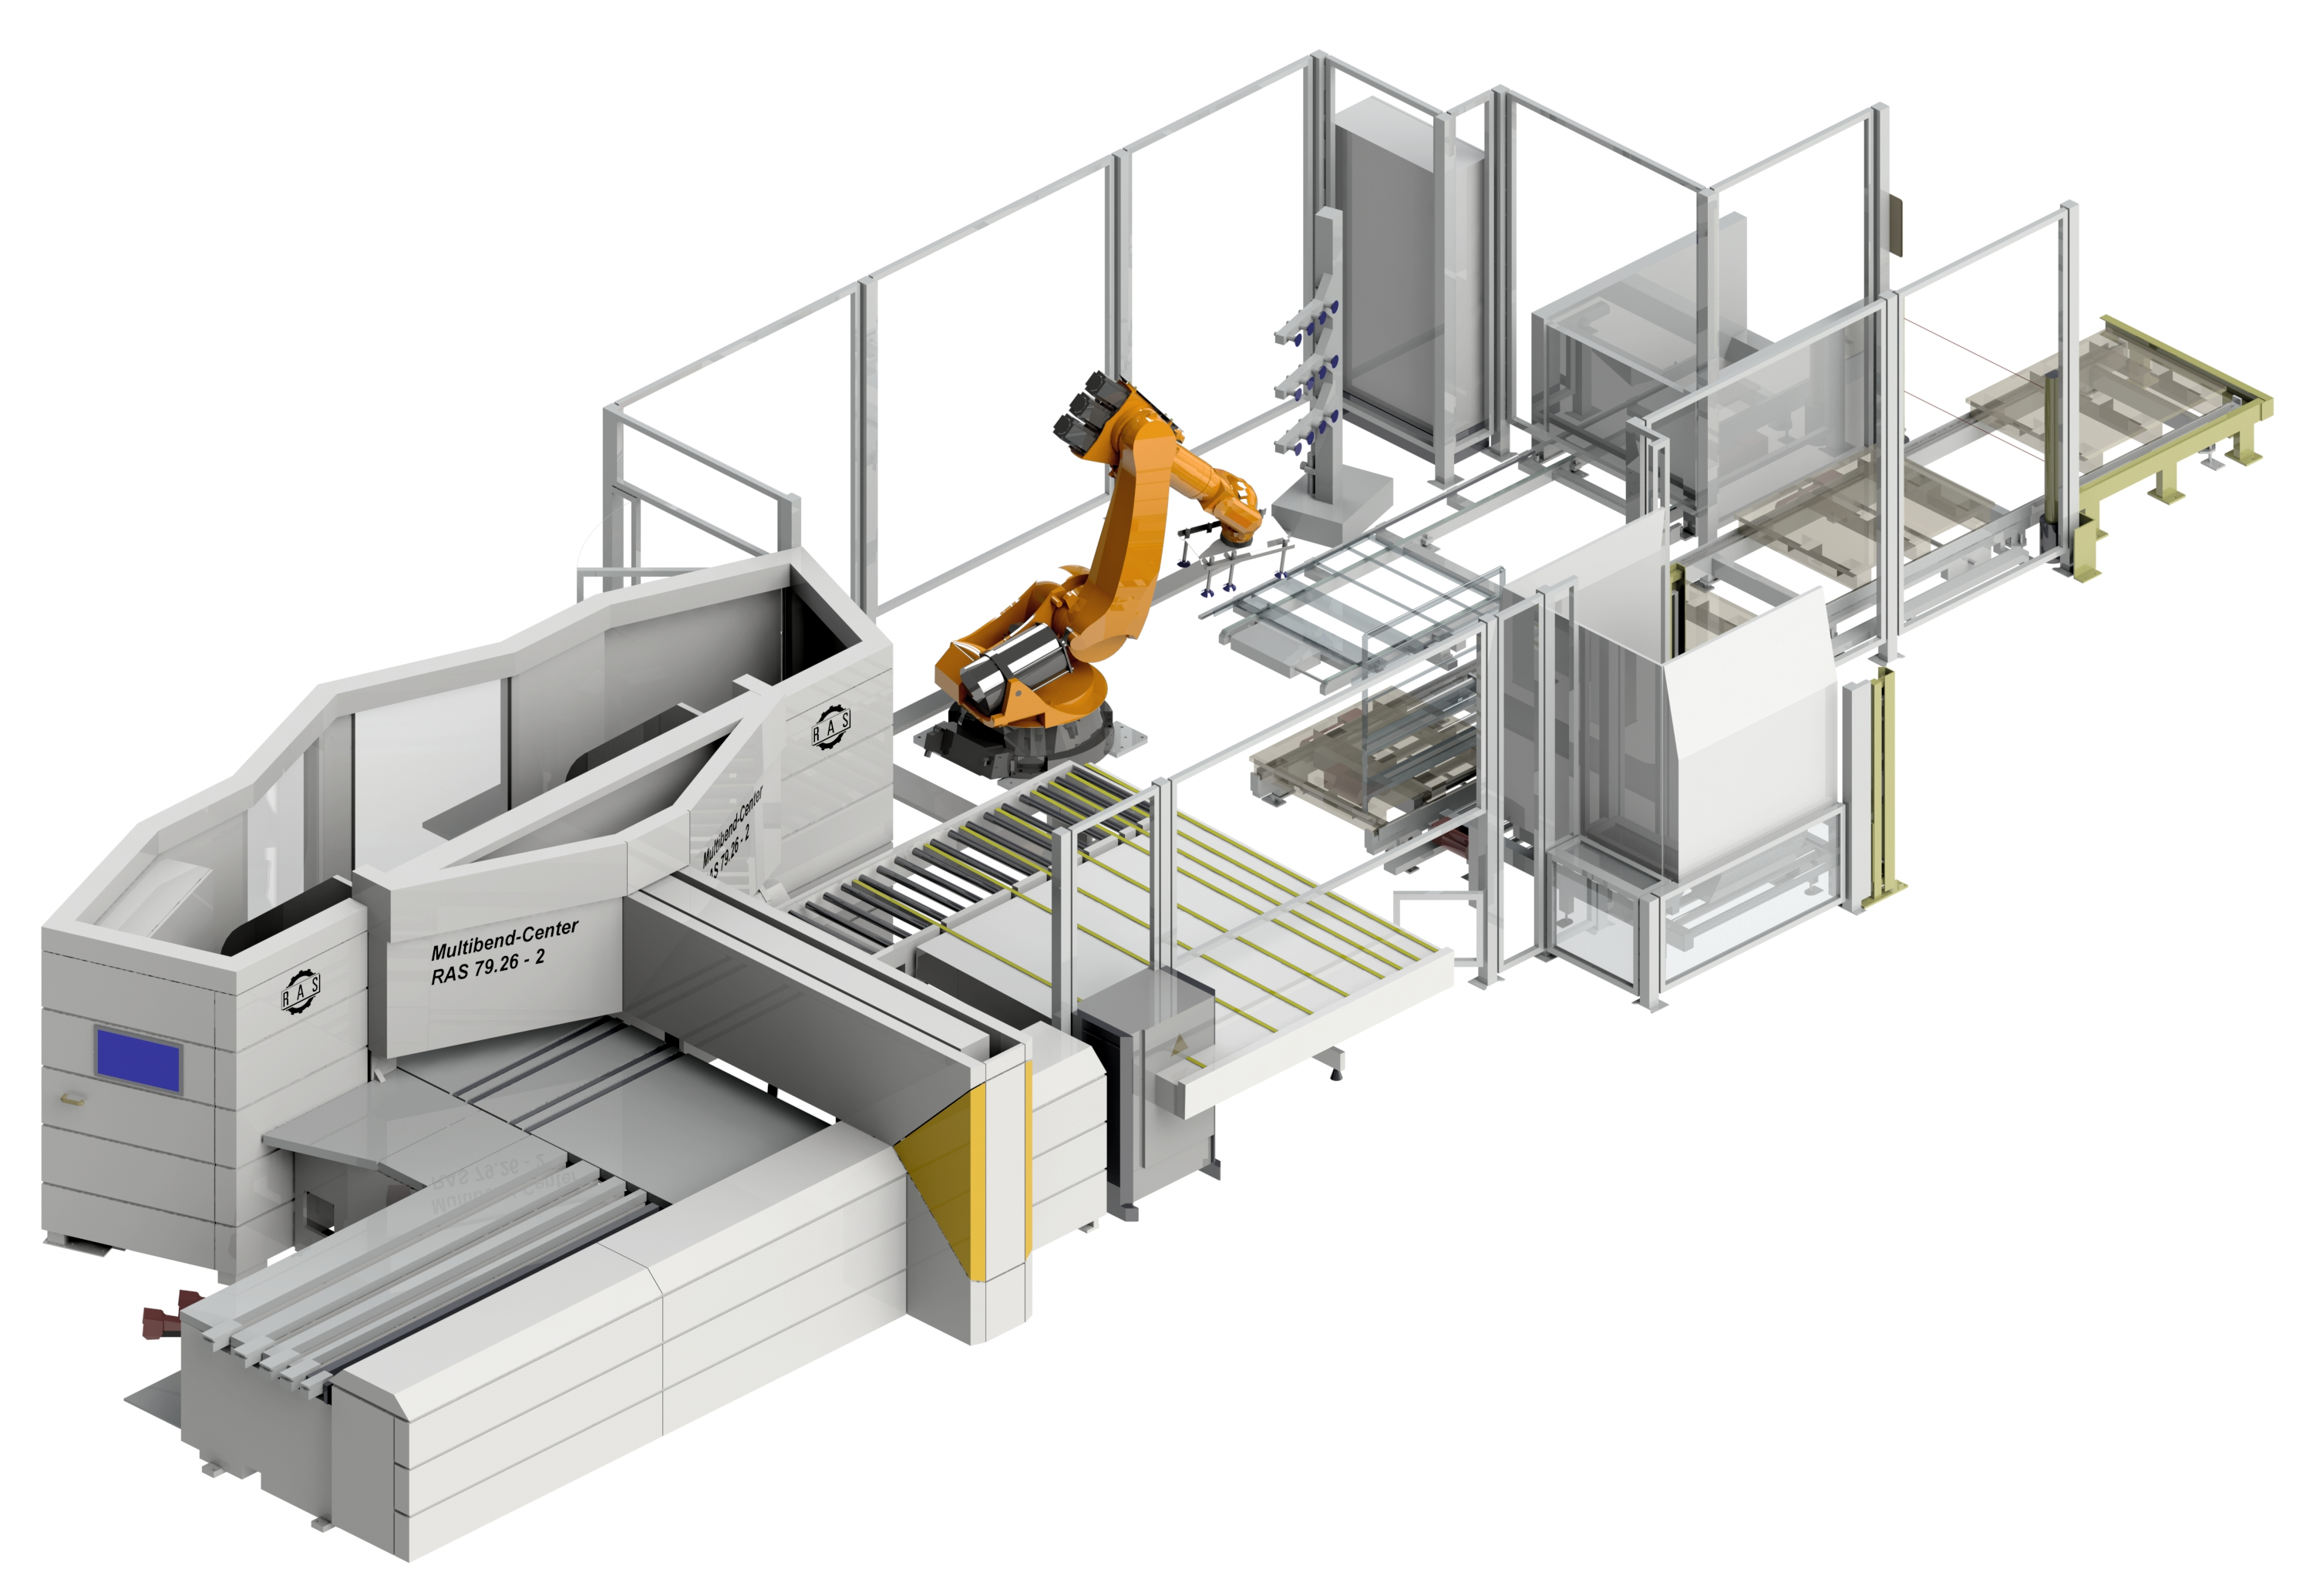 Automatic unloading and stacking of bent parts with an unloading robot. Pallet magazine and back panel magazine.